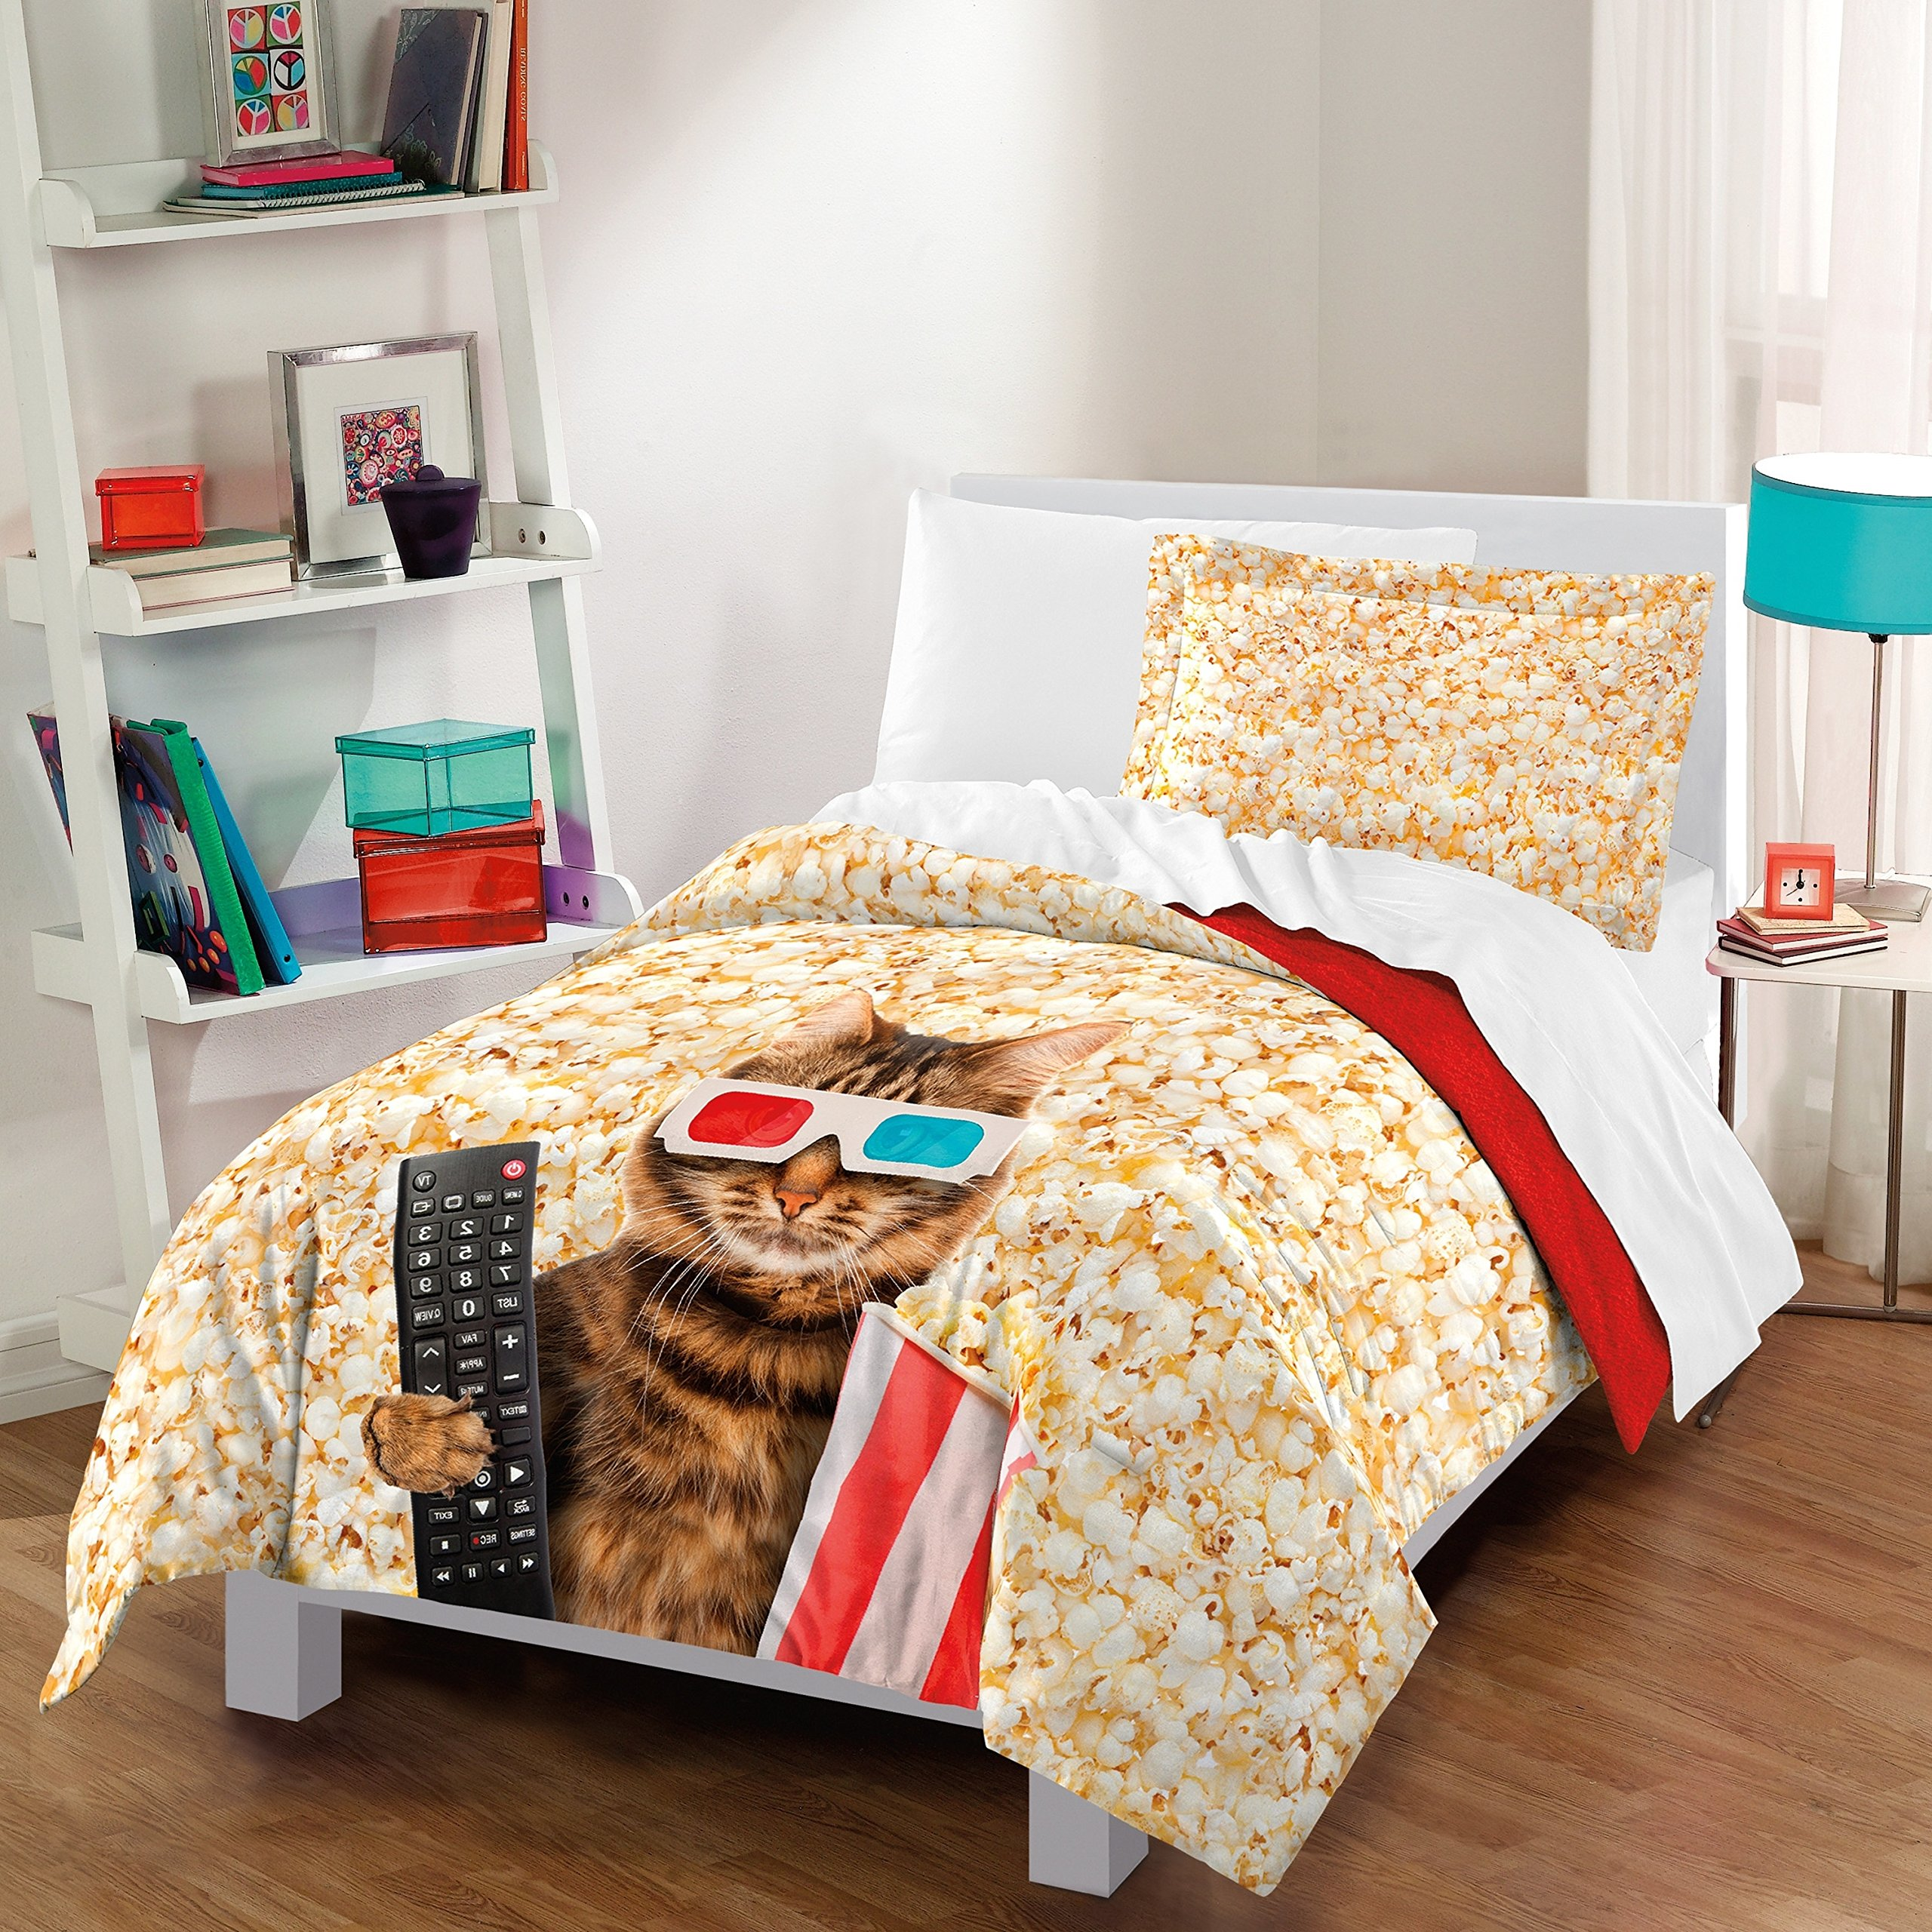 3 Piece Beige Brown Red Blue Cat At The Movies Theme Comforter Full Queen Set, Multi Animal Graphic Kitty With His Remote Popcorn Container 3 D Glasses Popcorns Print, Kids Bedding Teen Bedroom Cotton